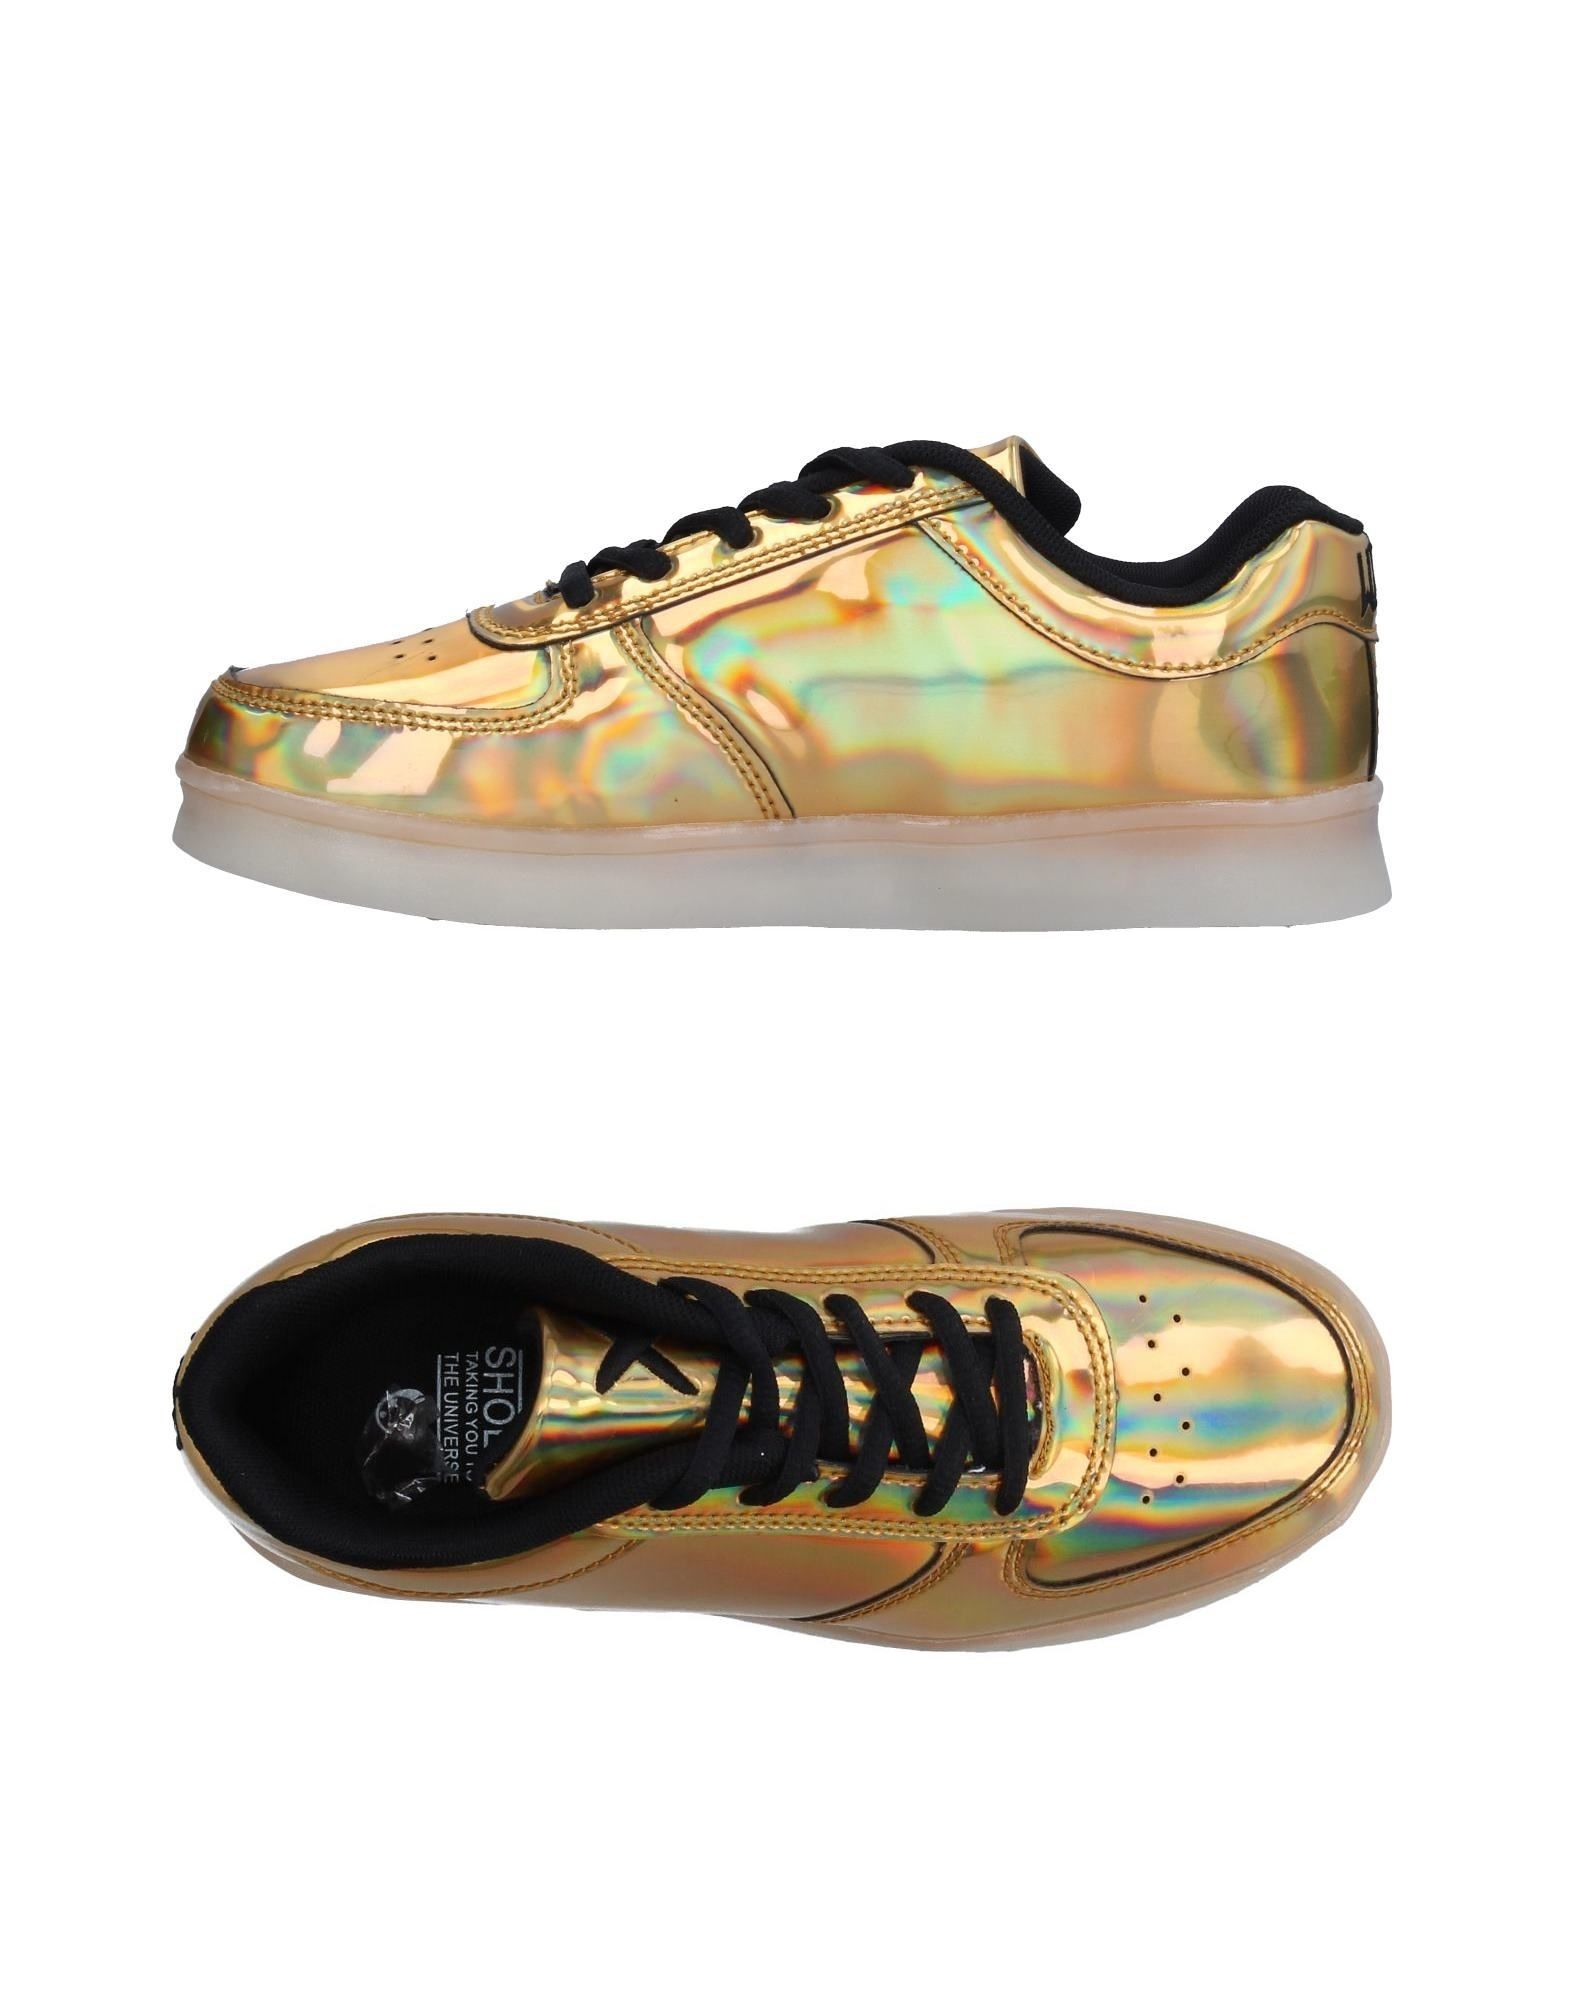 Sneakers Wize & Ope Femme - Sneakers Wize & Ope sur